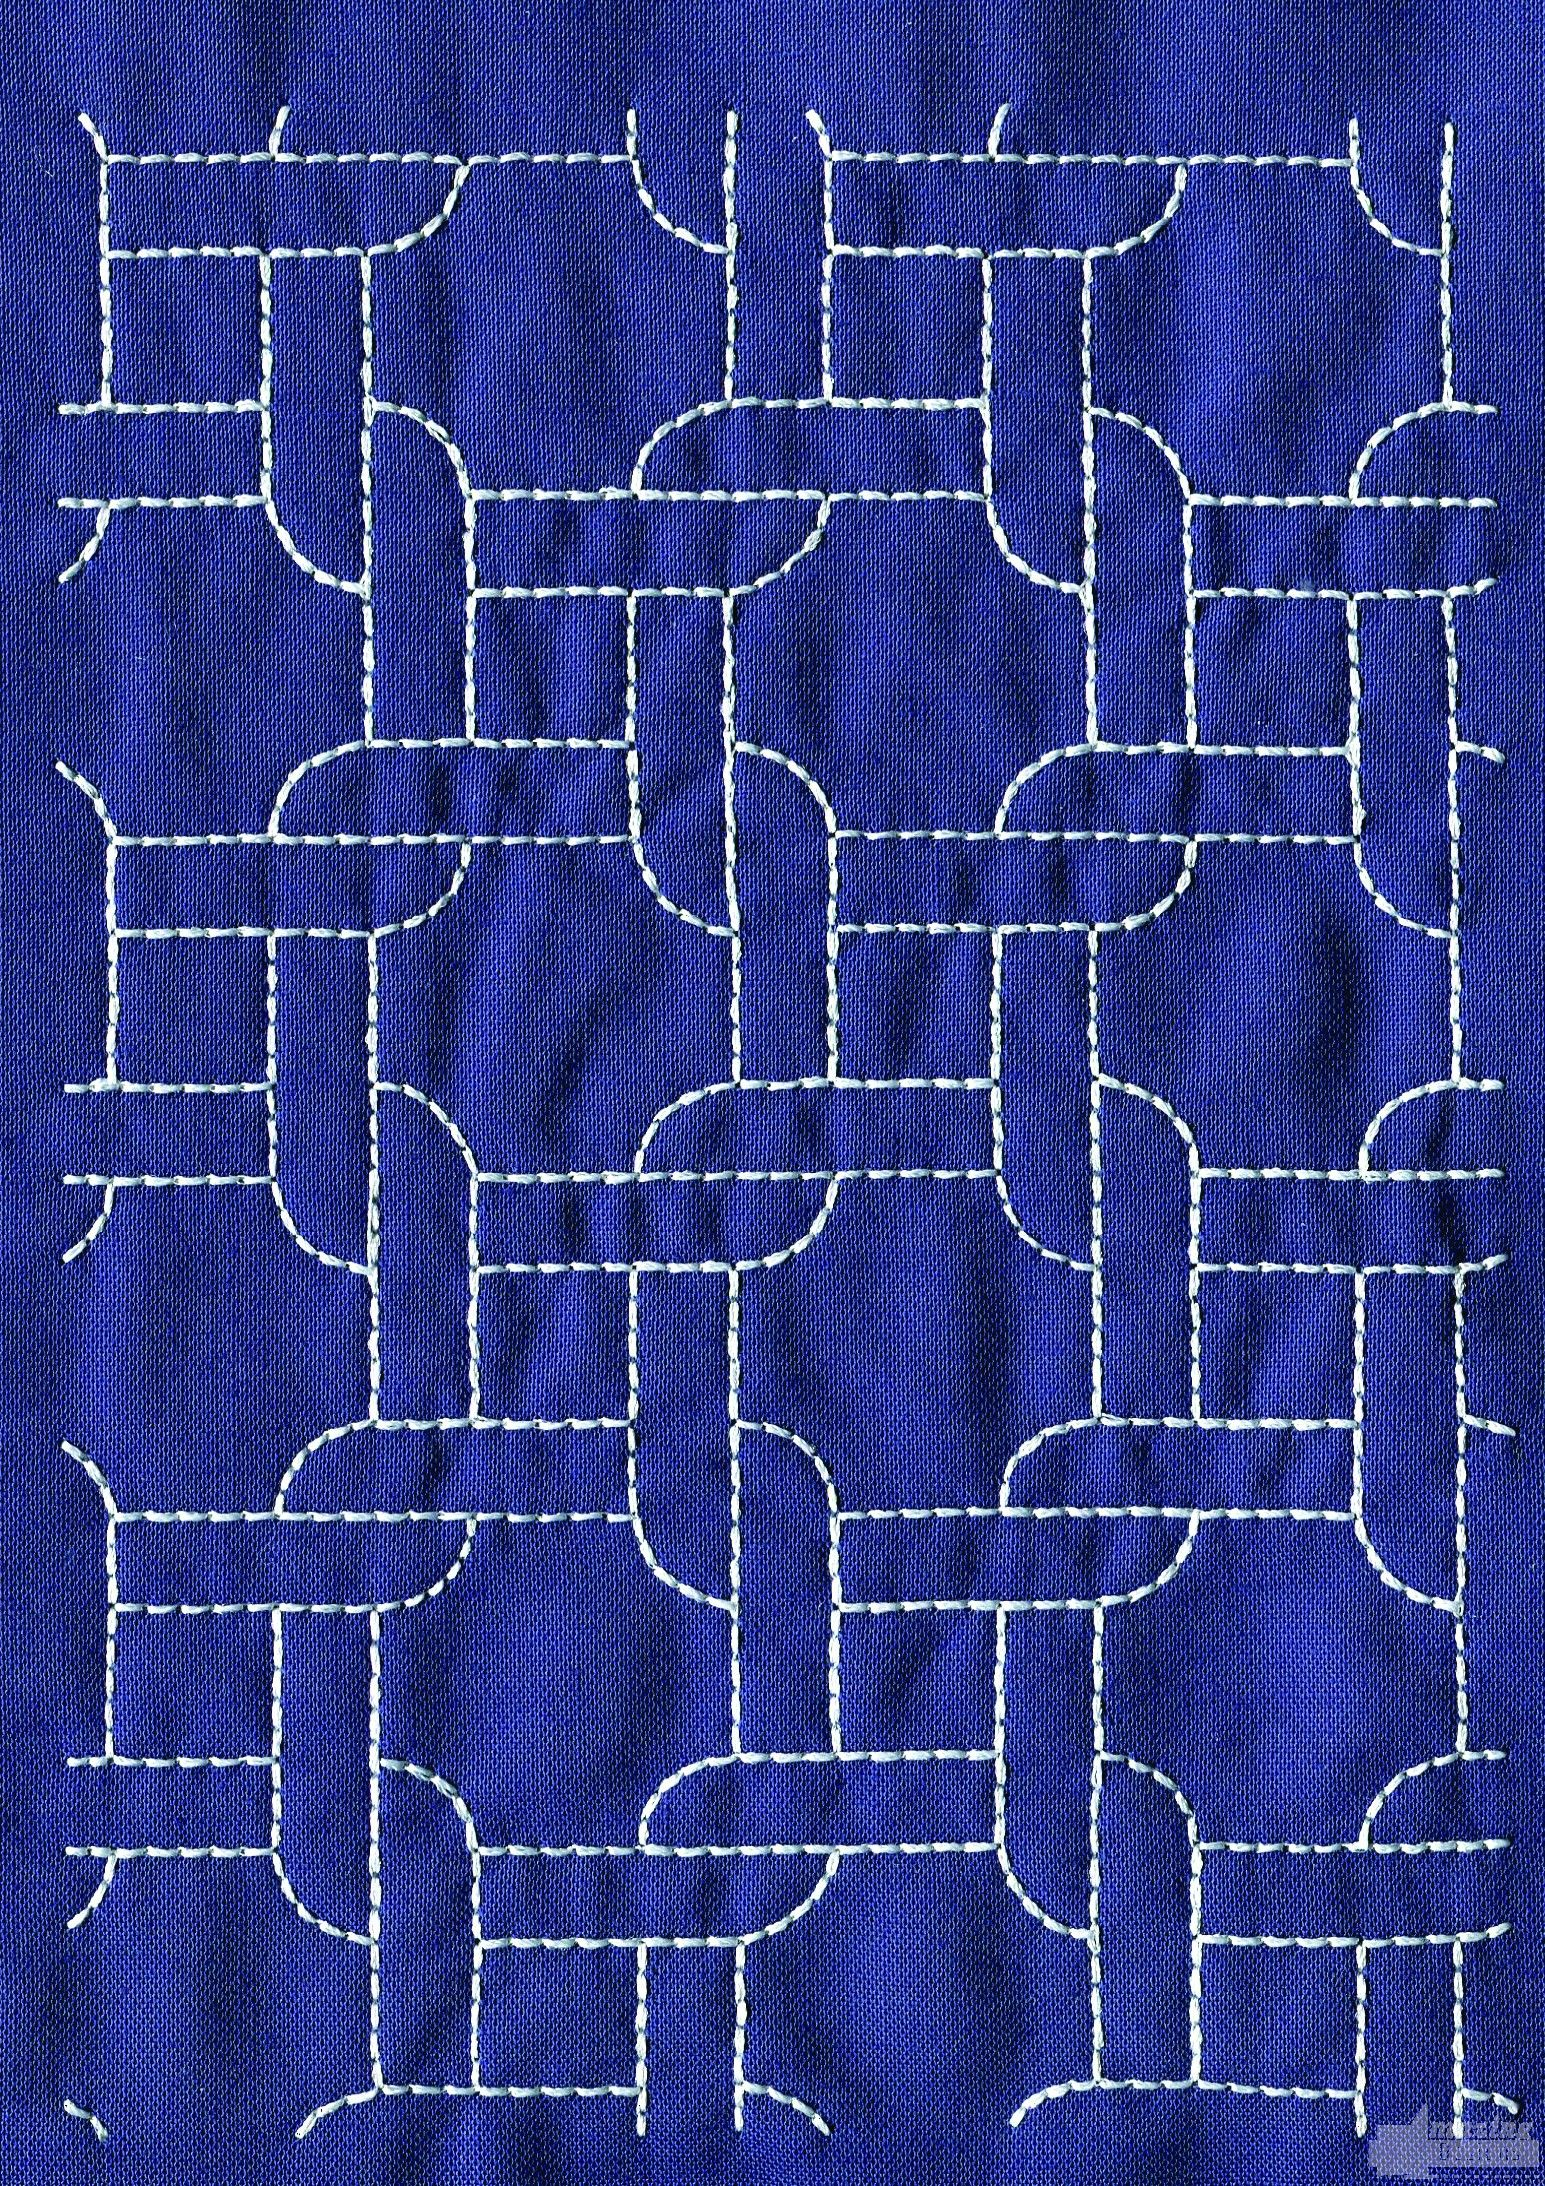 Sashiko Quilt Embroidery Design 20   Embroidery - Quilt Designs ...